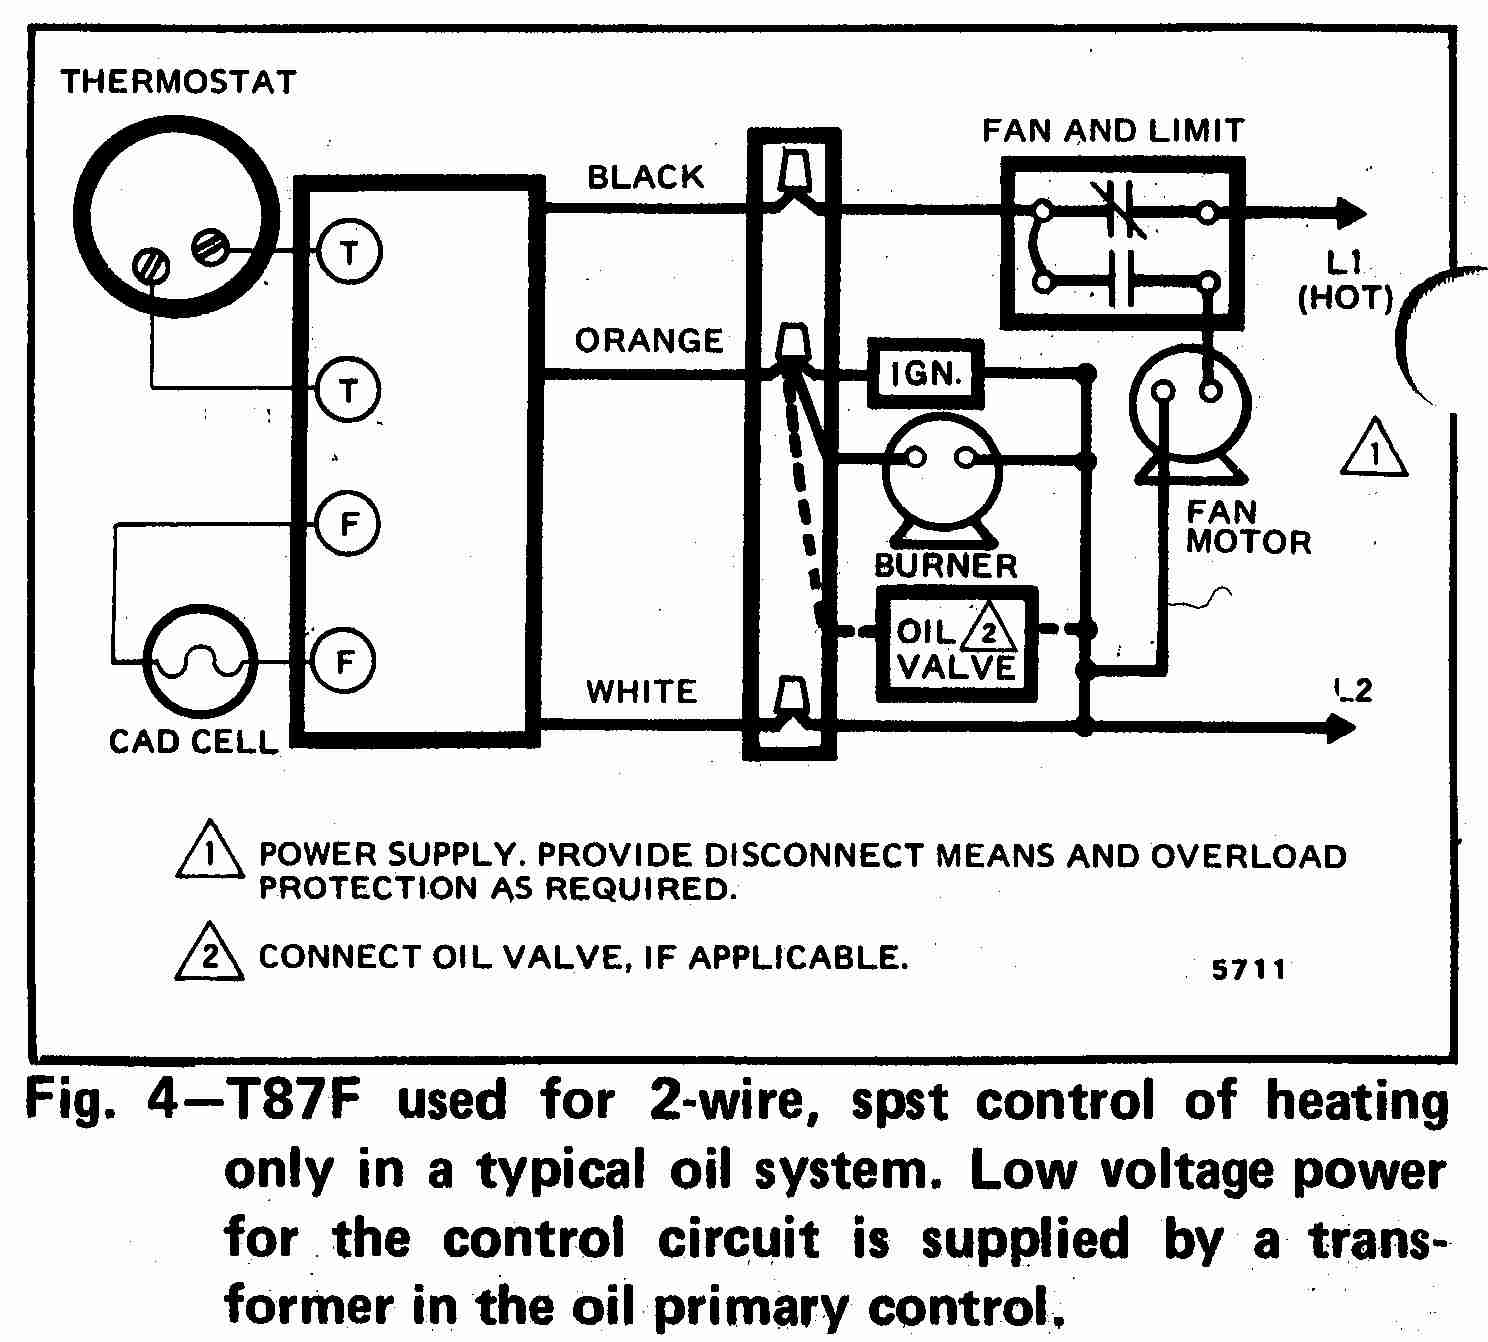 TT_T87F_0002_2W_DJF room thermostat wiring diagrams for hvac systems honeywell oil furnace wiring diagrams at reclaimingppi.co